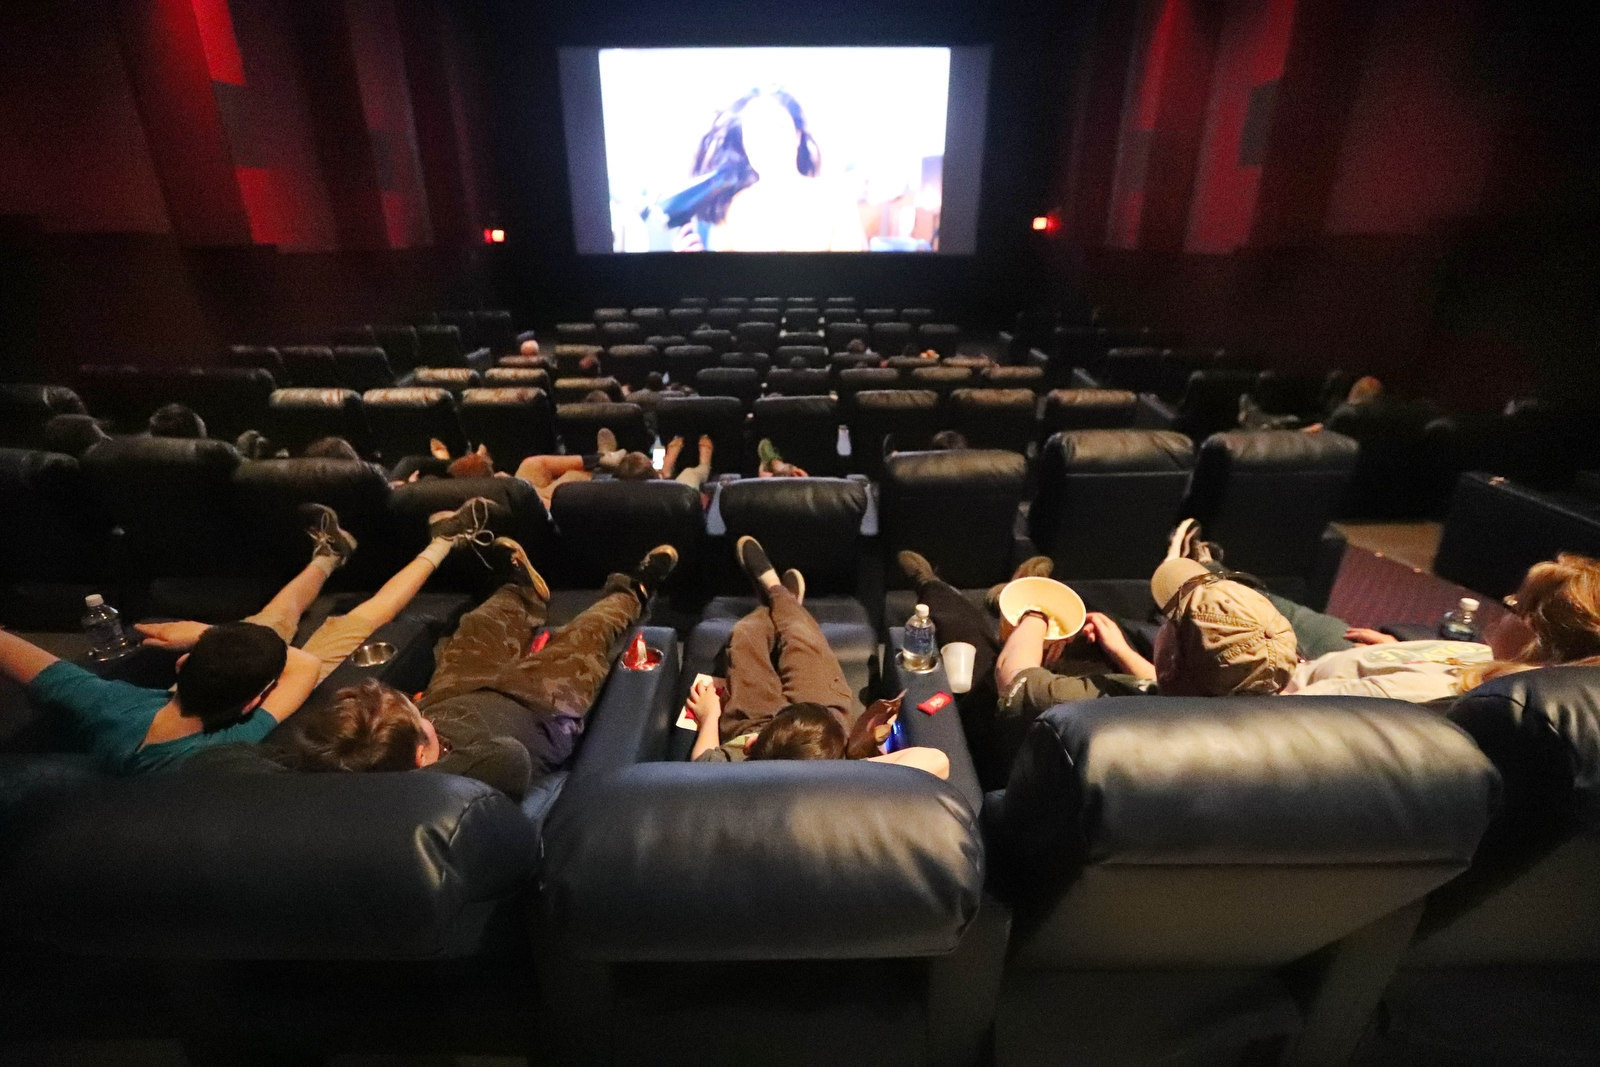 Recliner seats are an option at some local movie theaters. (Sharon Cantillon/Buffalo News)